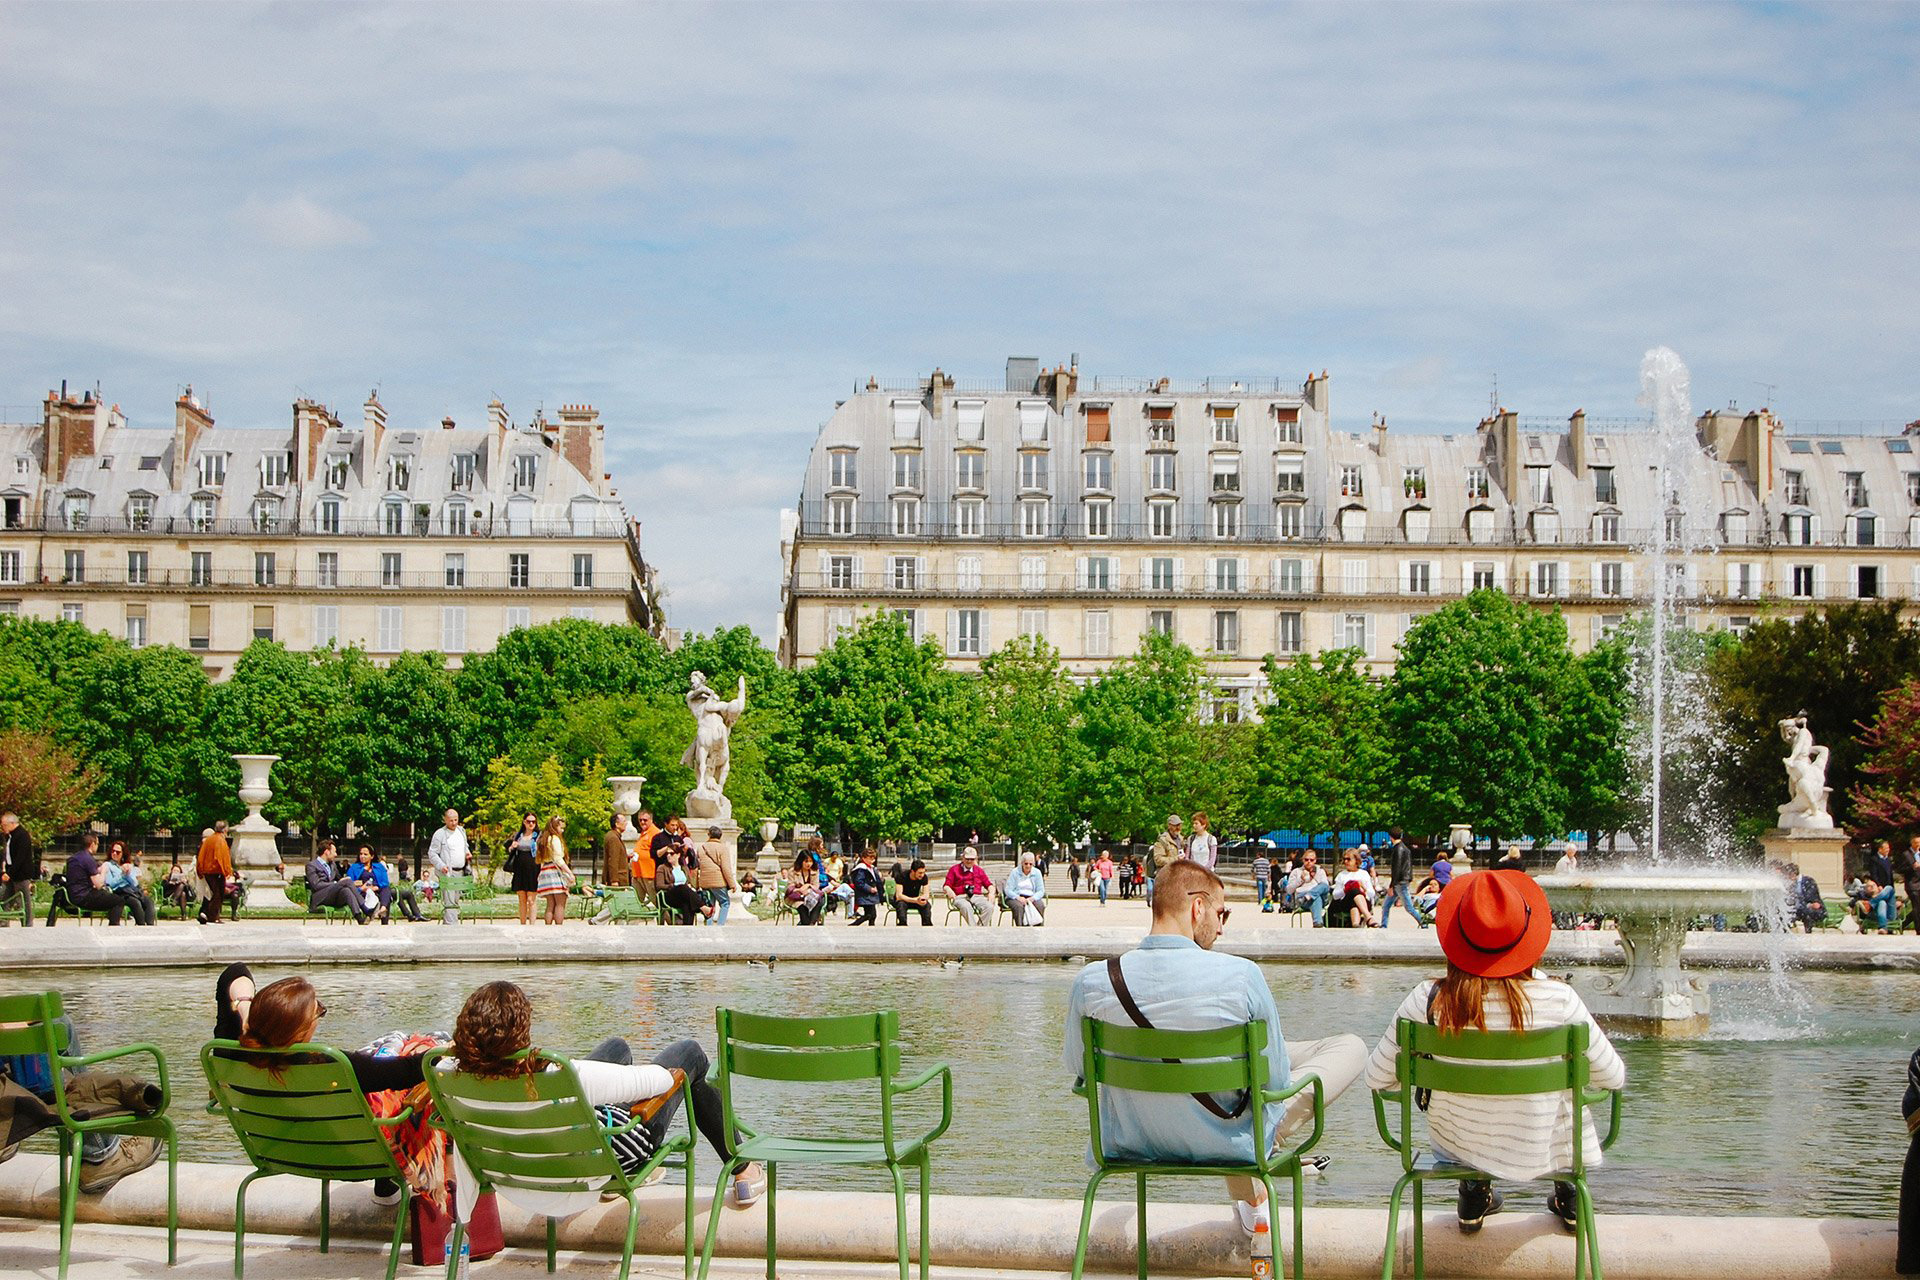 Soak up the sun in the Tuileries gardens